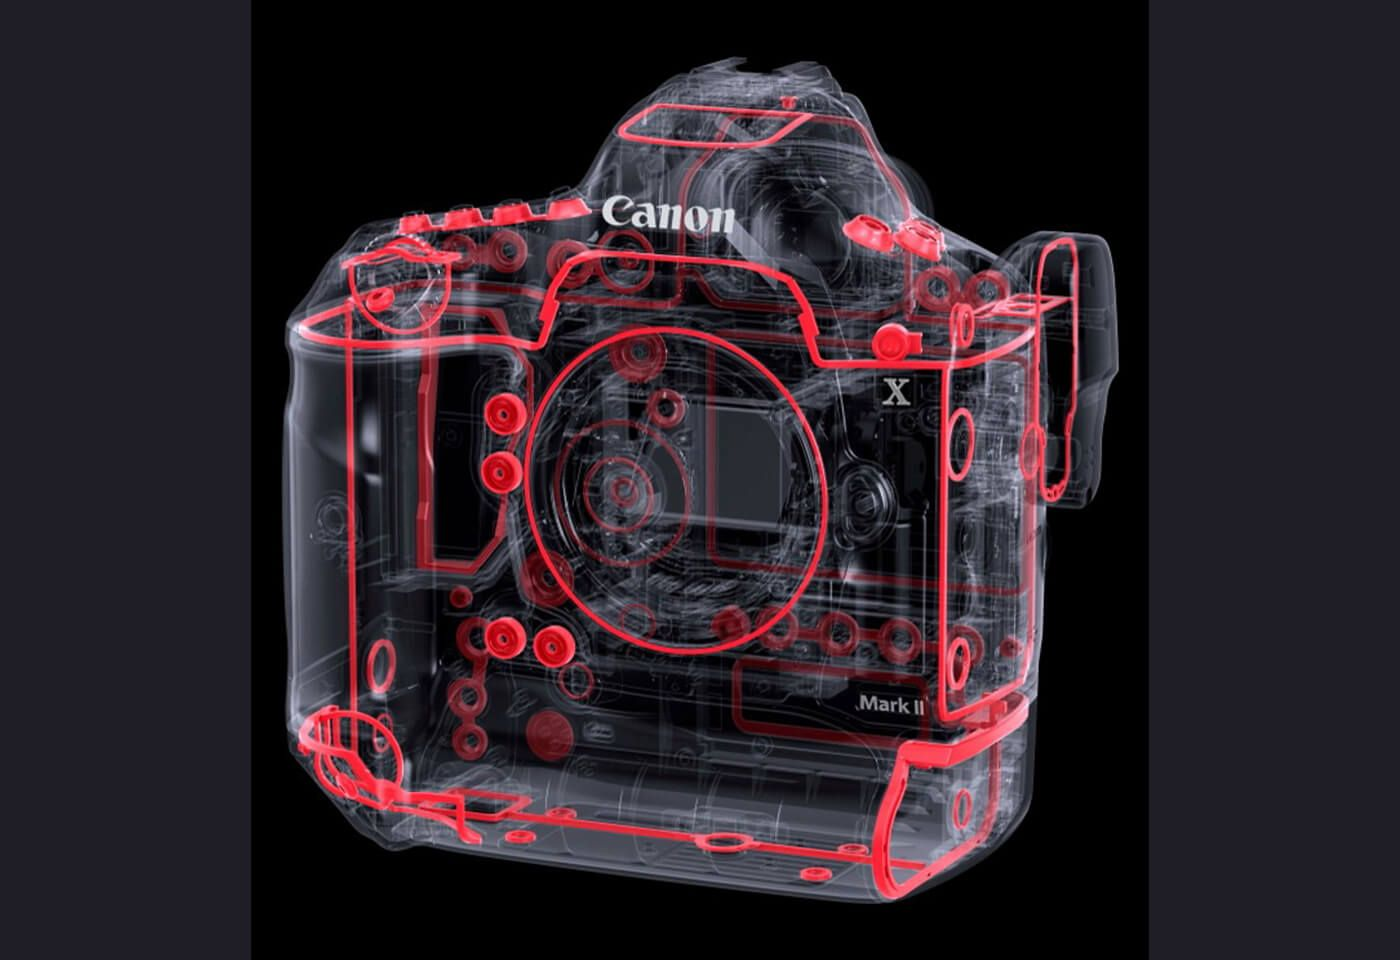 Eos 1dx Mark Ii Weather Sealing Canon Eos 1d X Mark Ii Canon1dxmarkiiprice Canon1dxmarkii Canon1dxpri Best Camera For Photography Digital Camera Best Camera